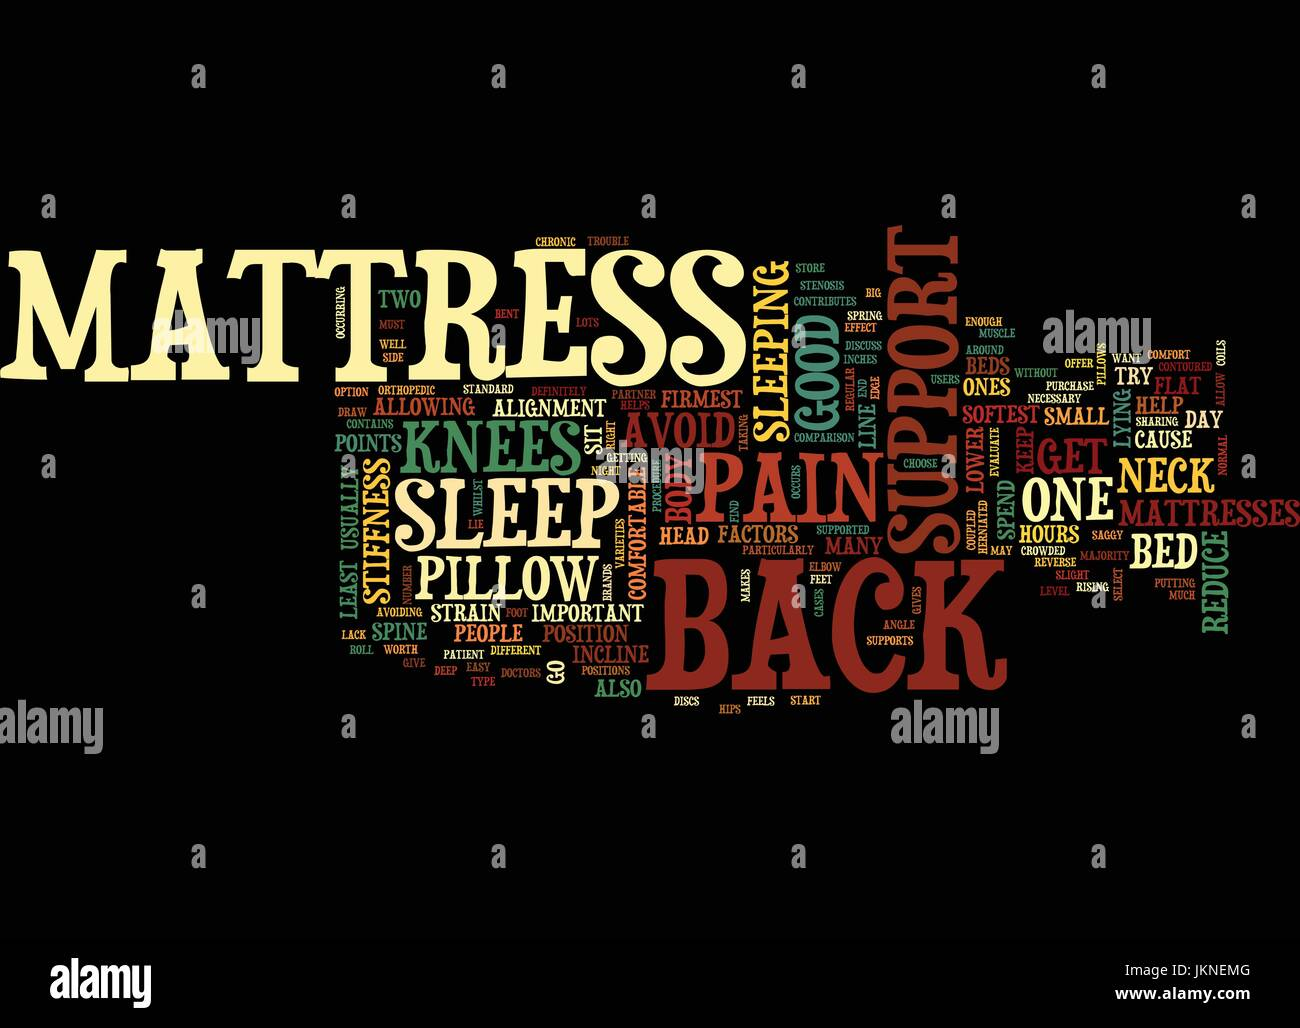 MATTRESS AND BACK SUPPORT Text Background Word Cloud Concept - Stock Image